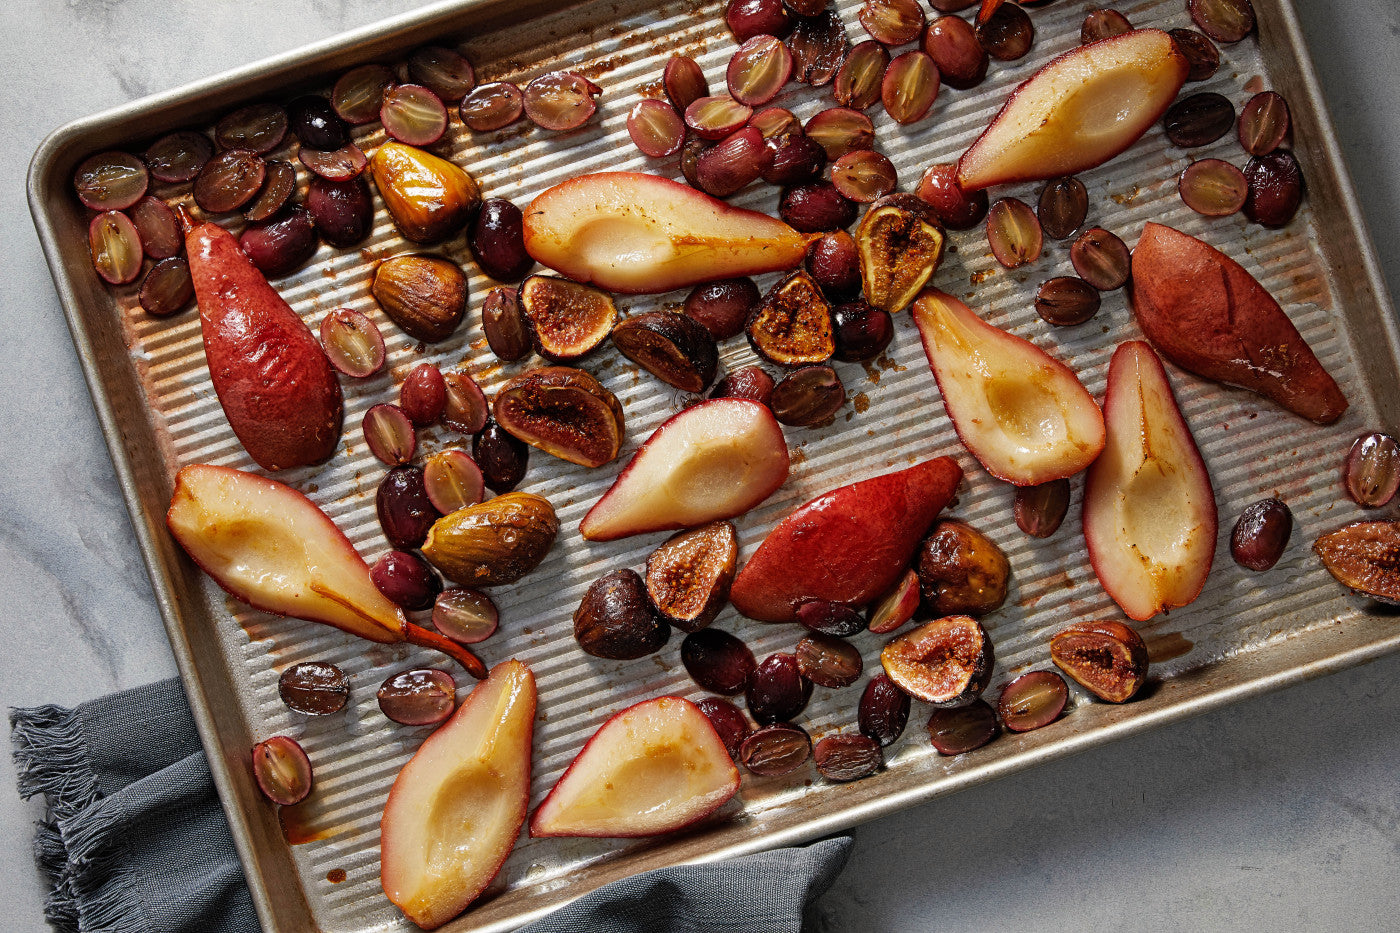 Roasting fall fruit deepens their flavor and nourishes the senses